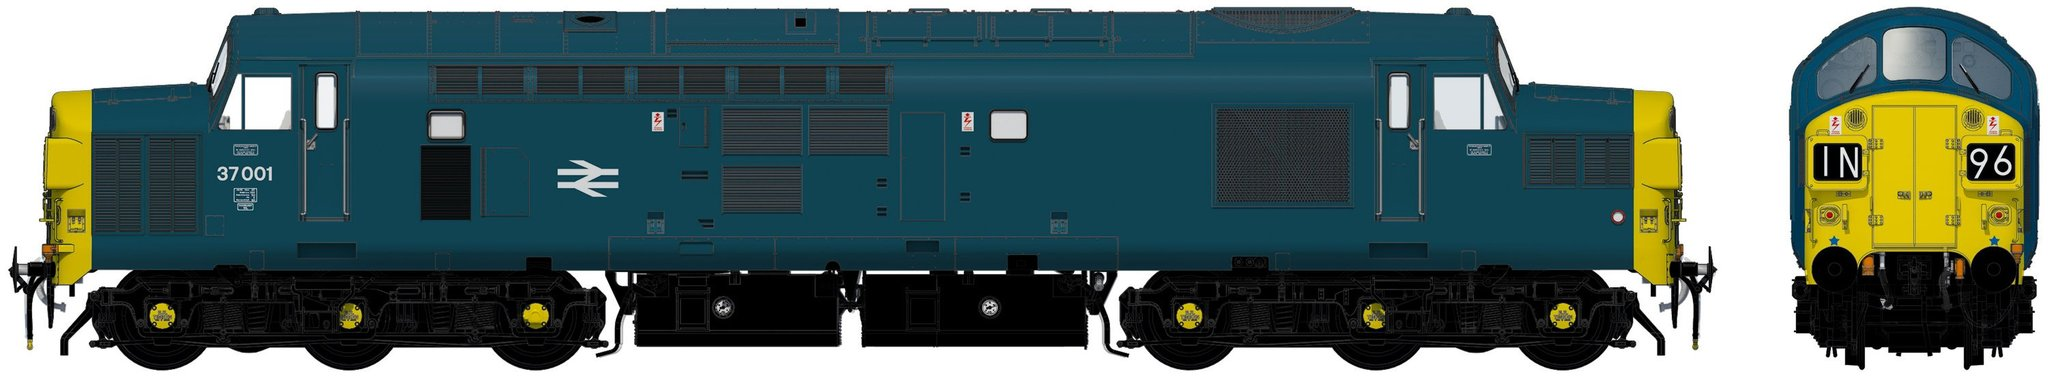 Accurascale English Electric Type 3 (Class 37) - 37001